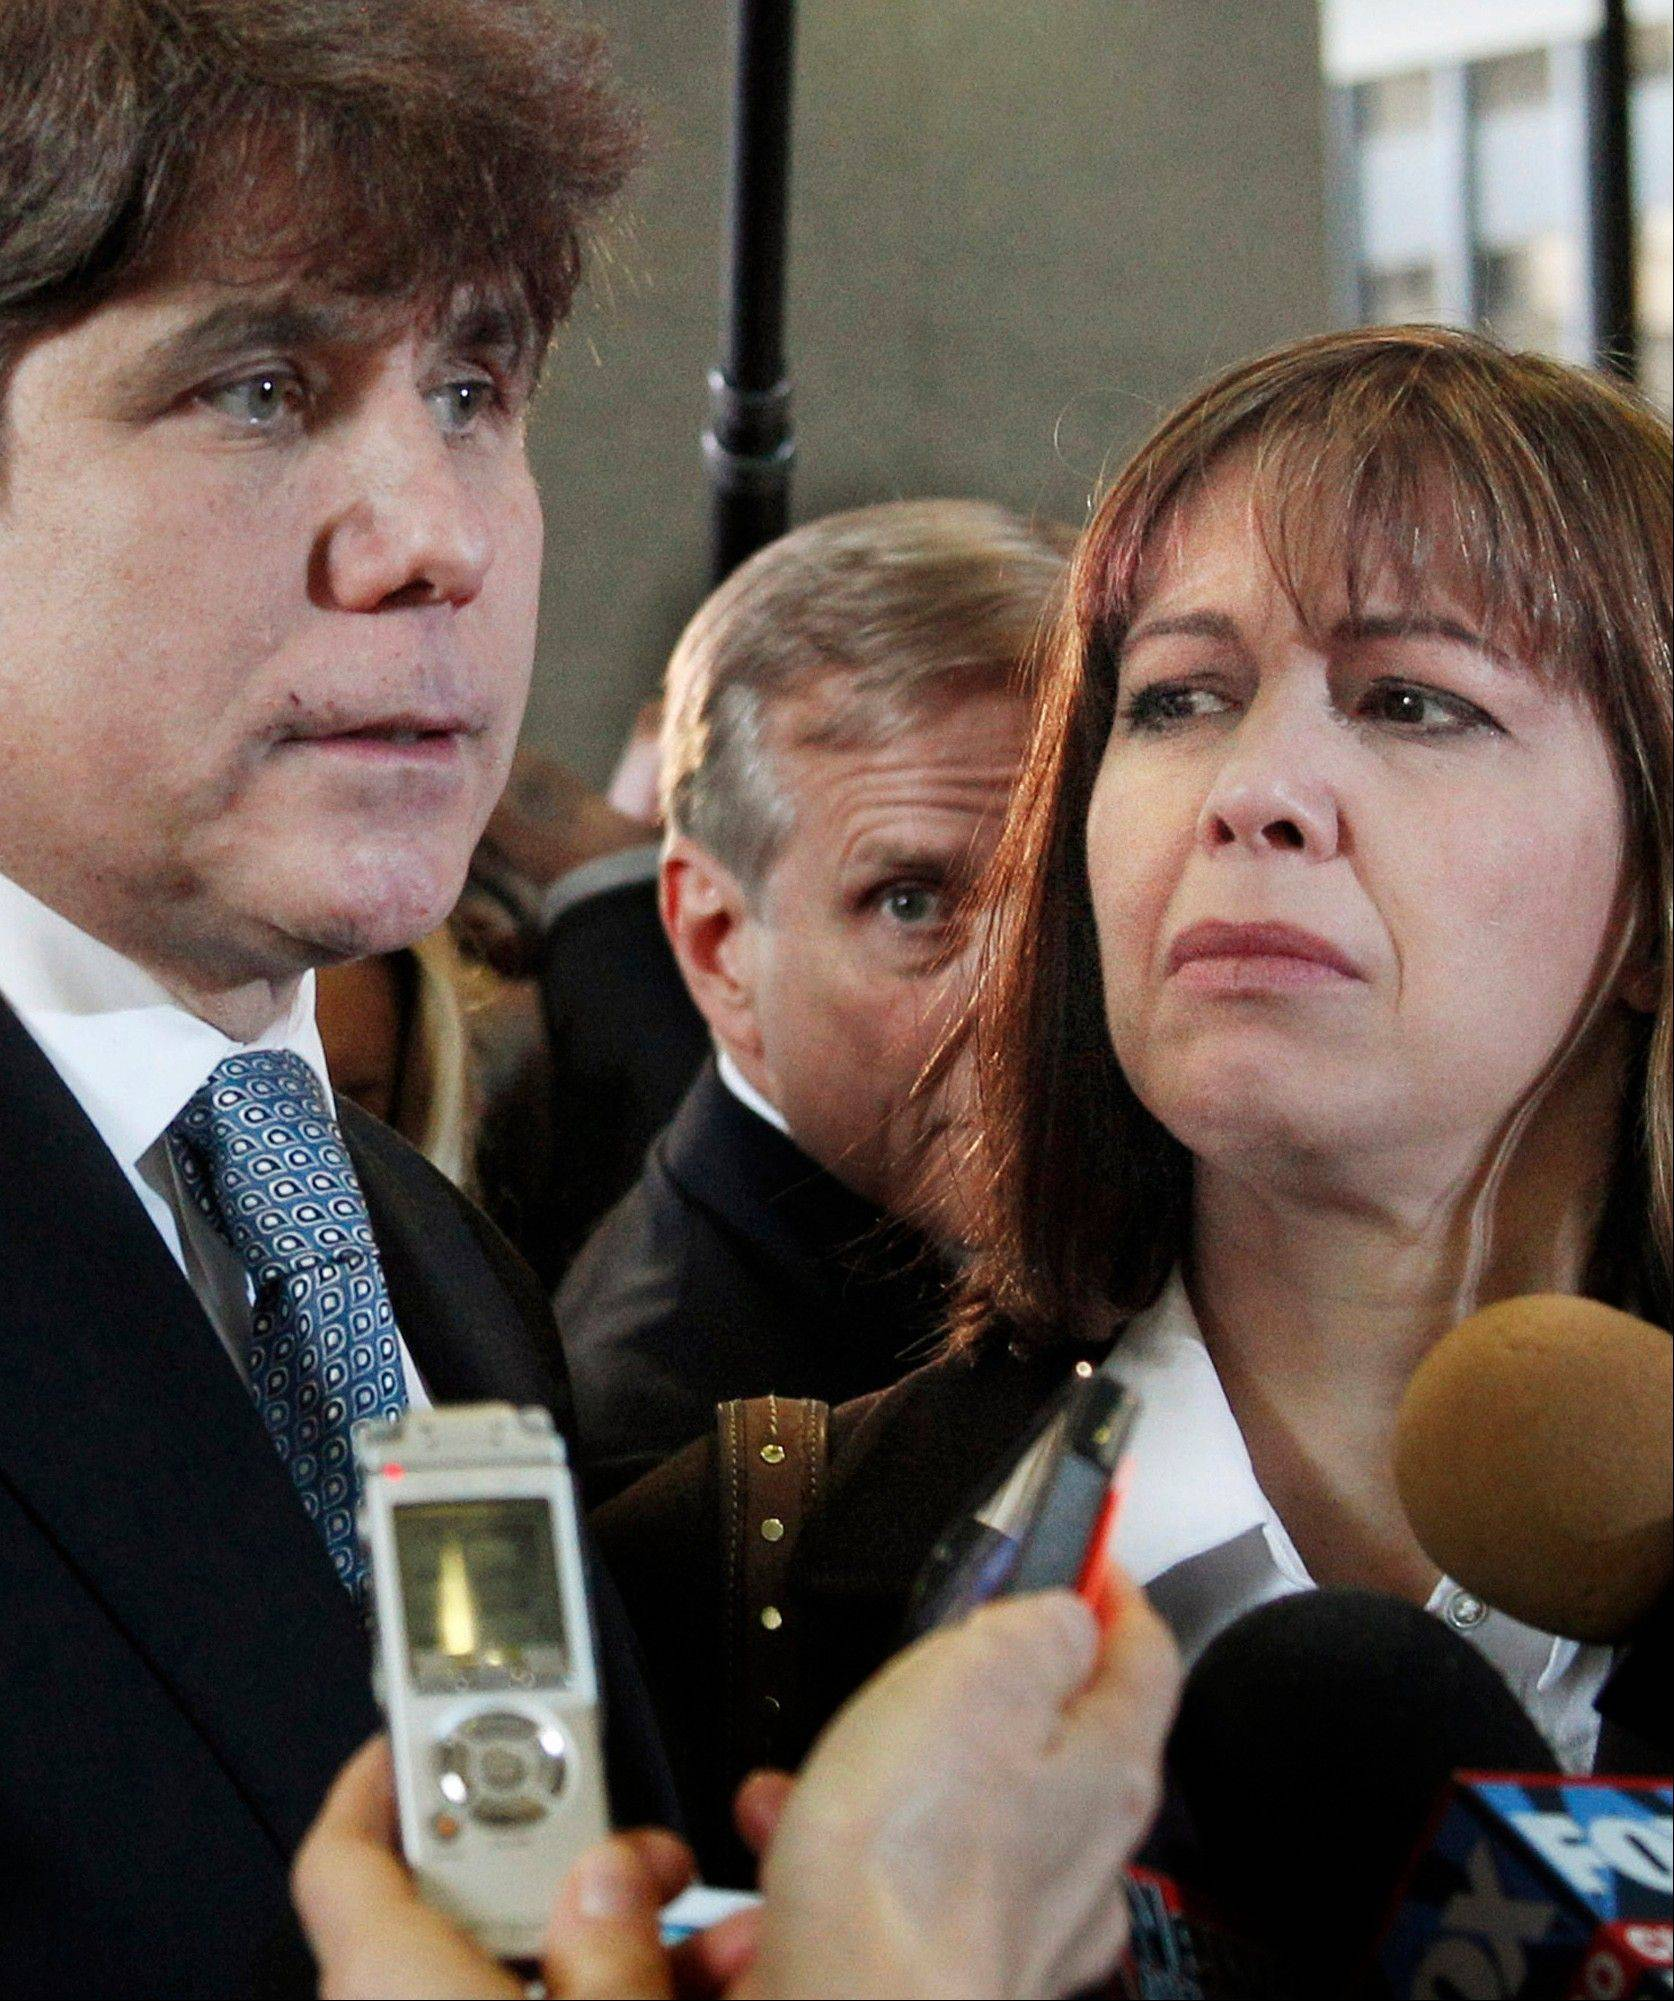 Judge takes fine out of Blagojevich's pension